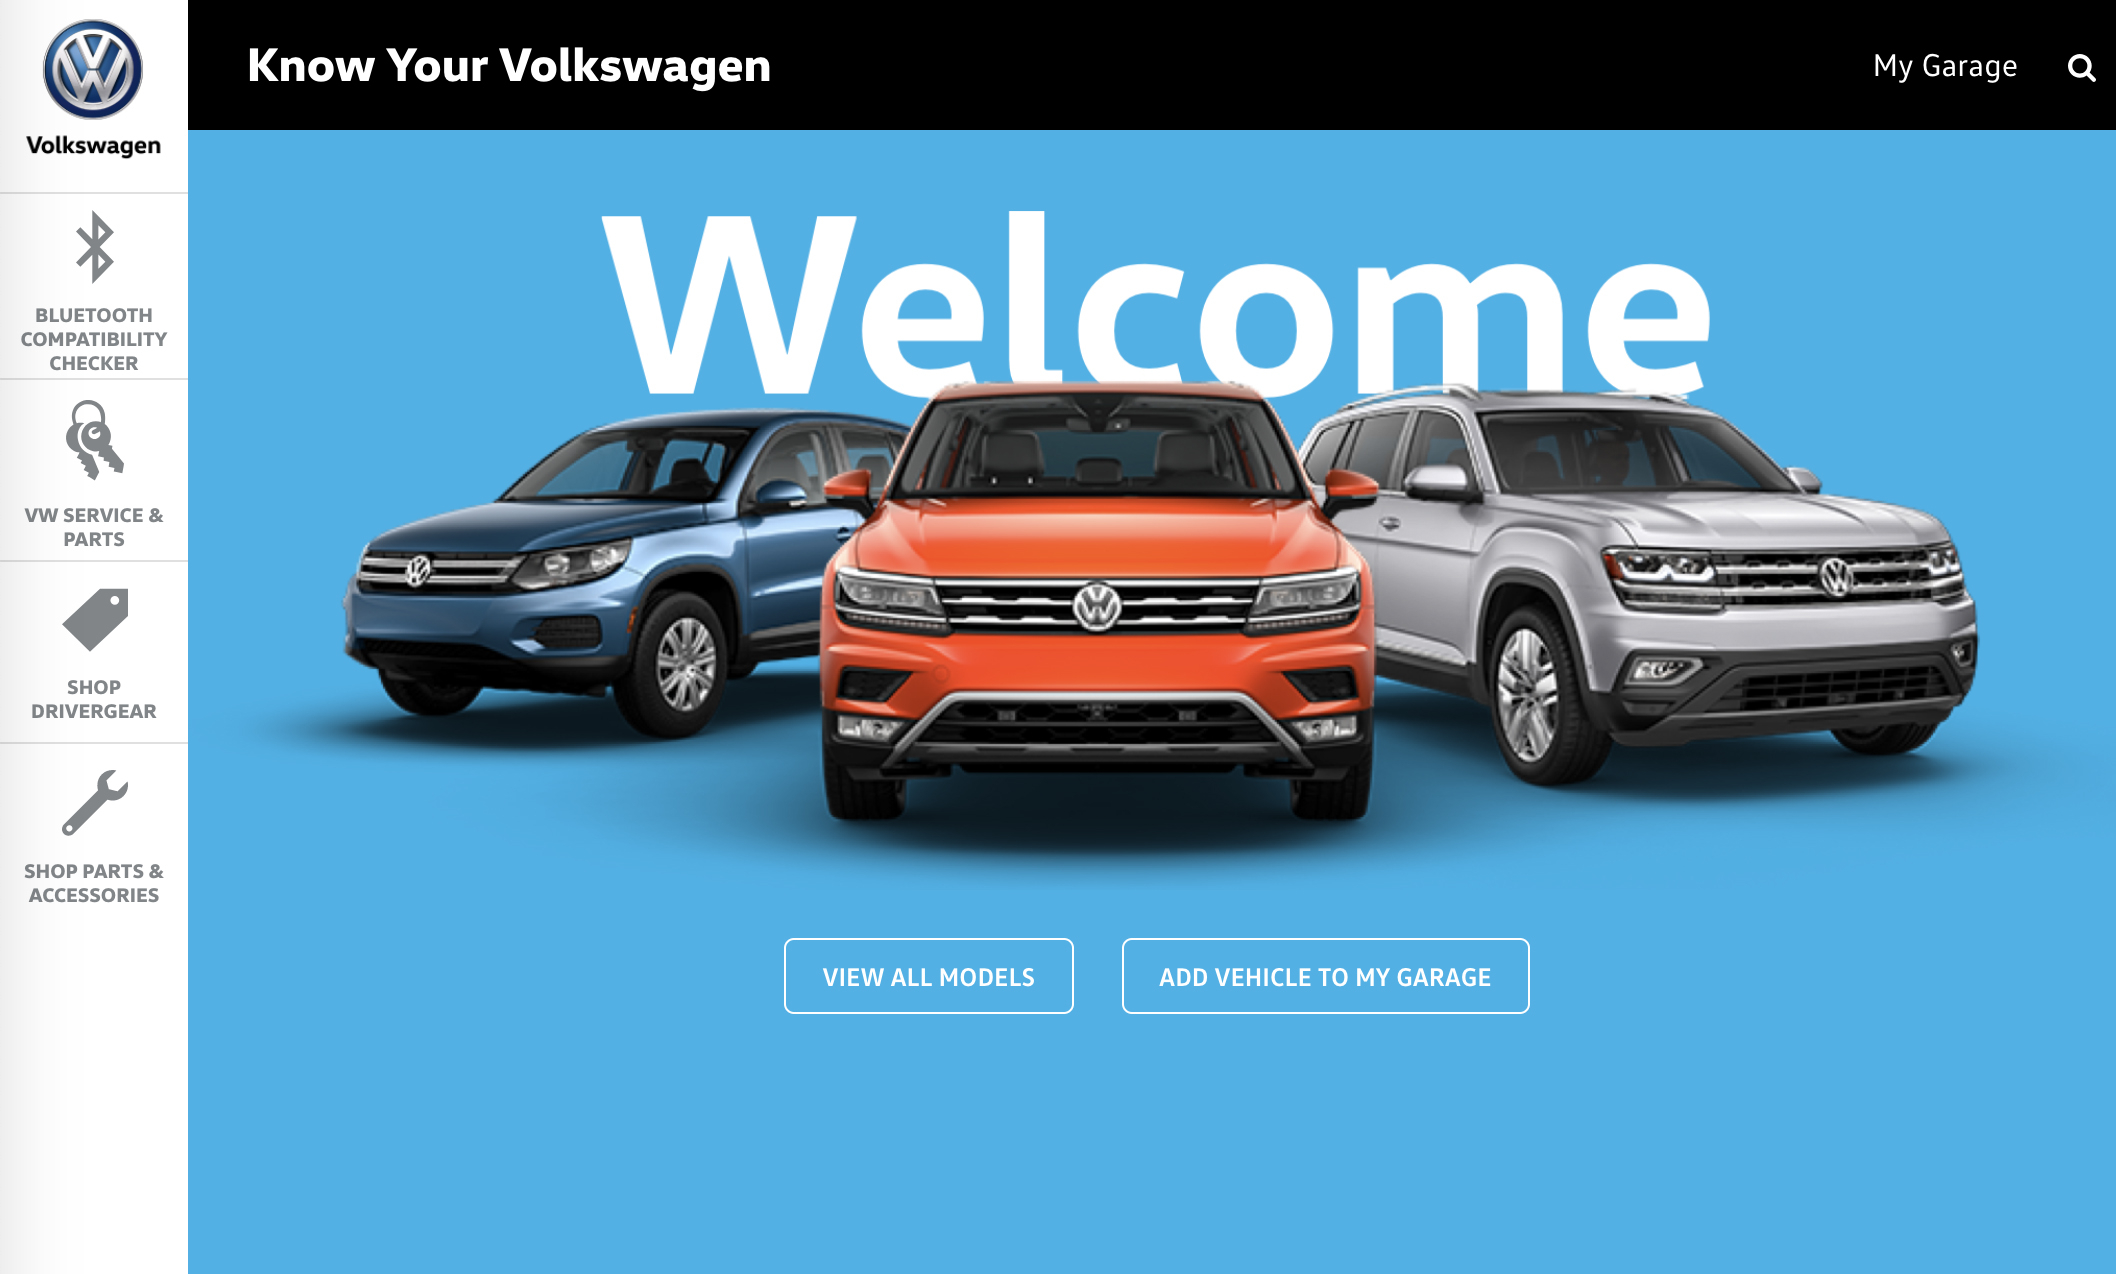 Know Your Vw | 2019 Tiguan - 2019 Vw Tiguan Owners Manual